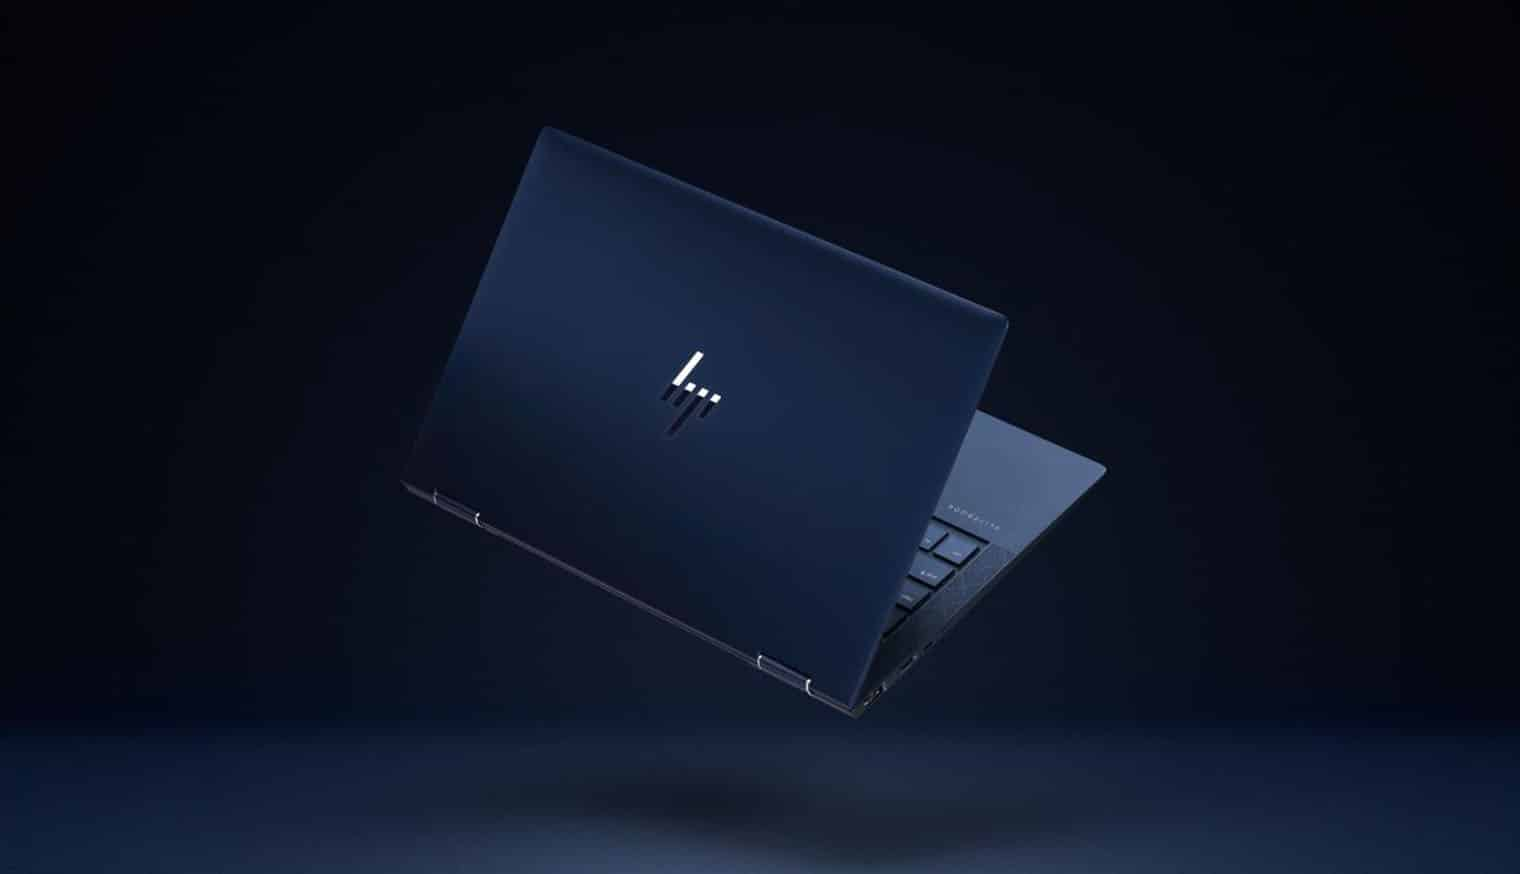 hp introduces elite dragonfly